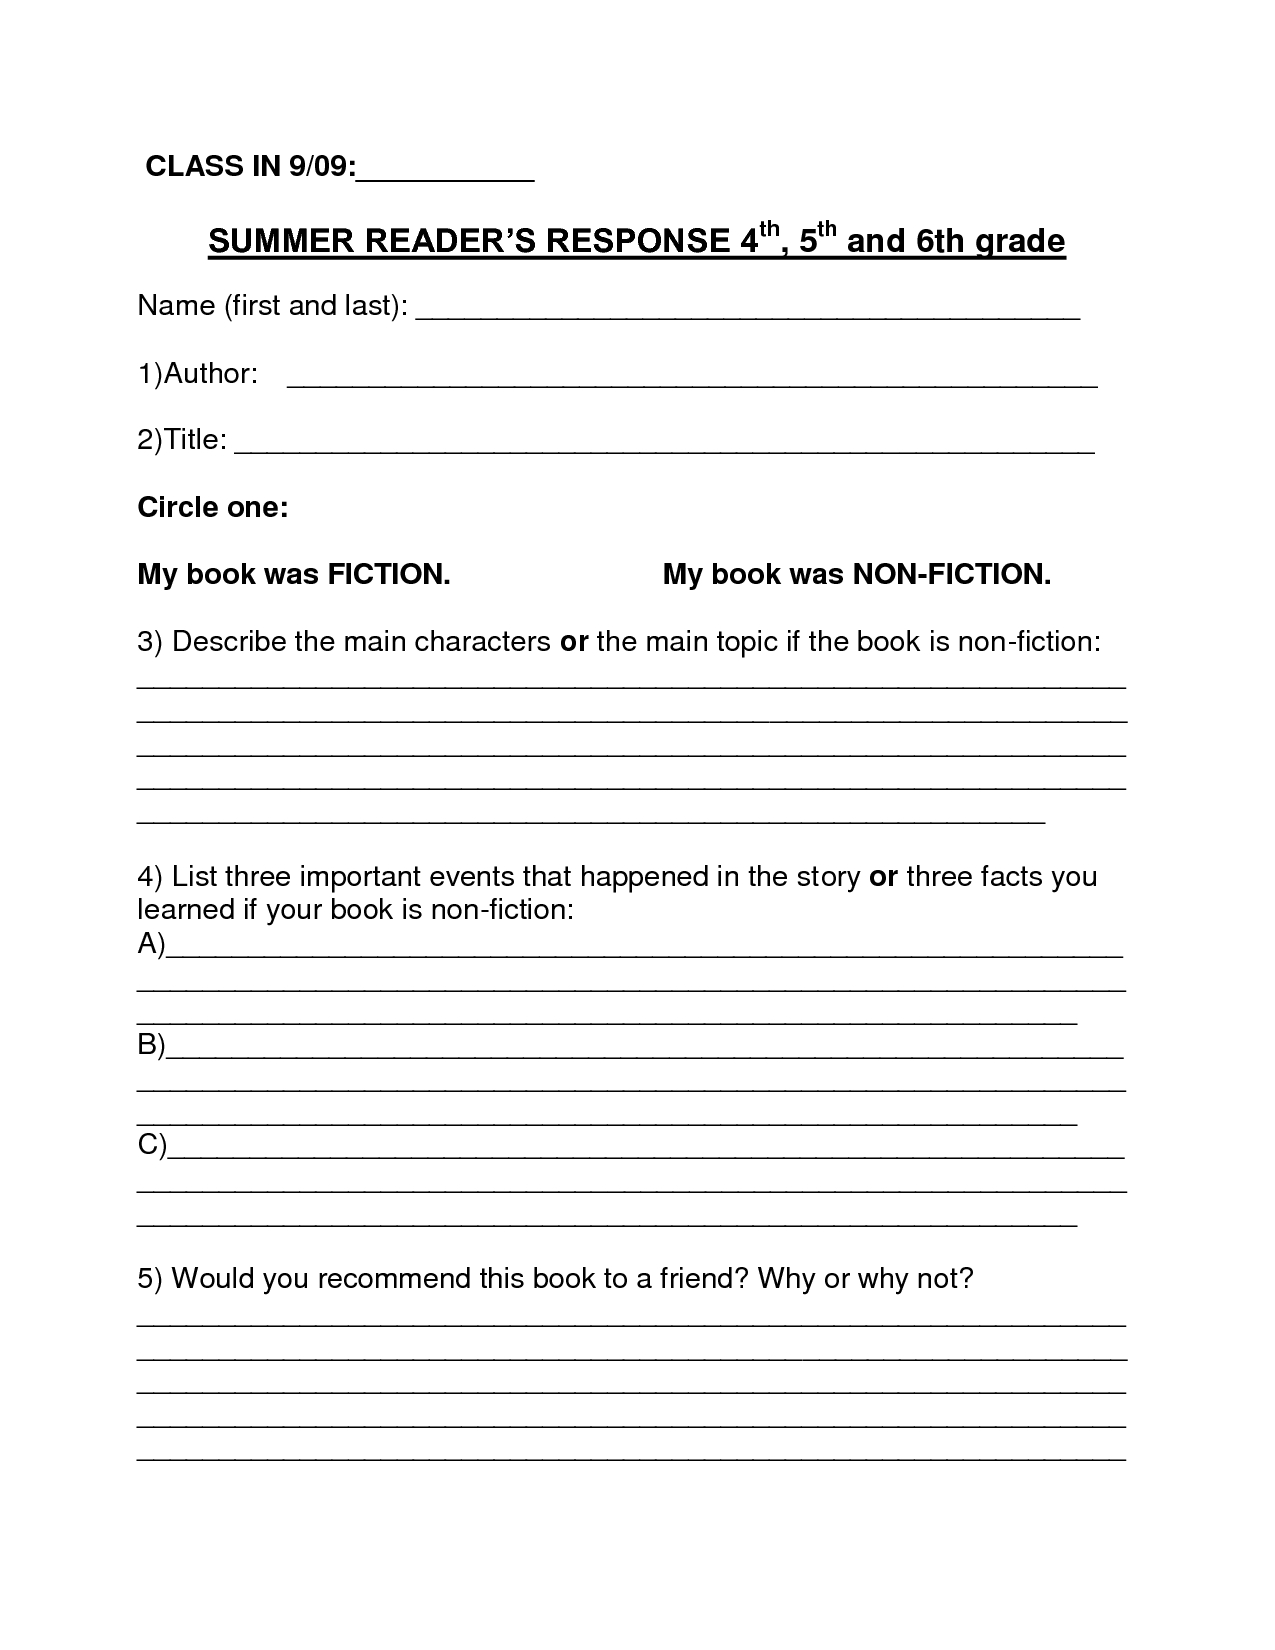 Book Report Template   Summer Book Report 4Th  6Th Grade With 4Th Grade Book Report Template